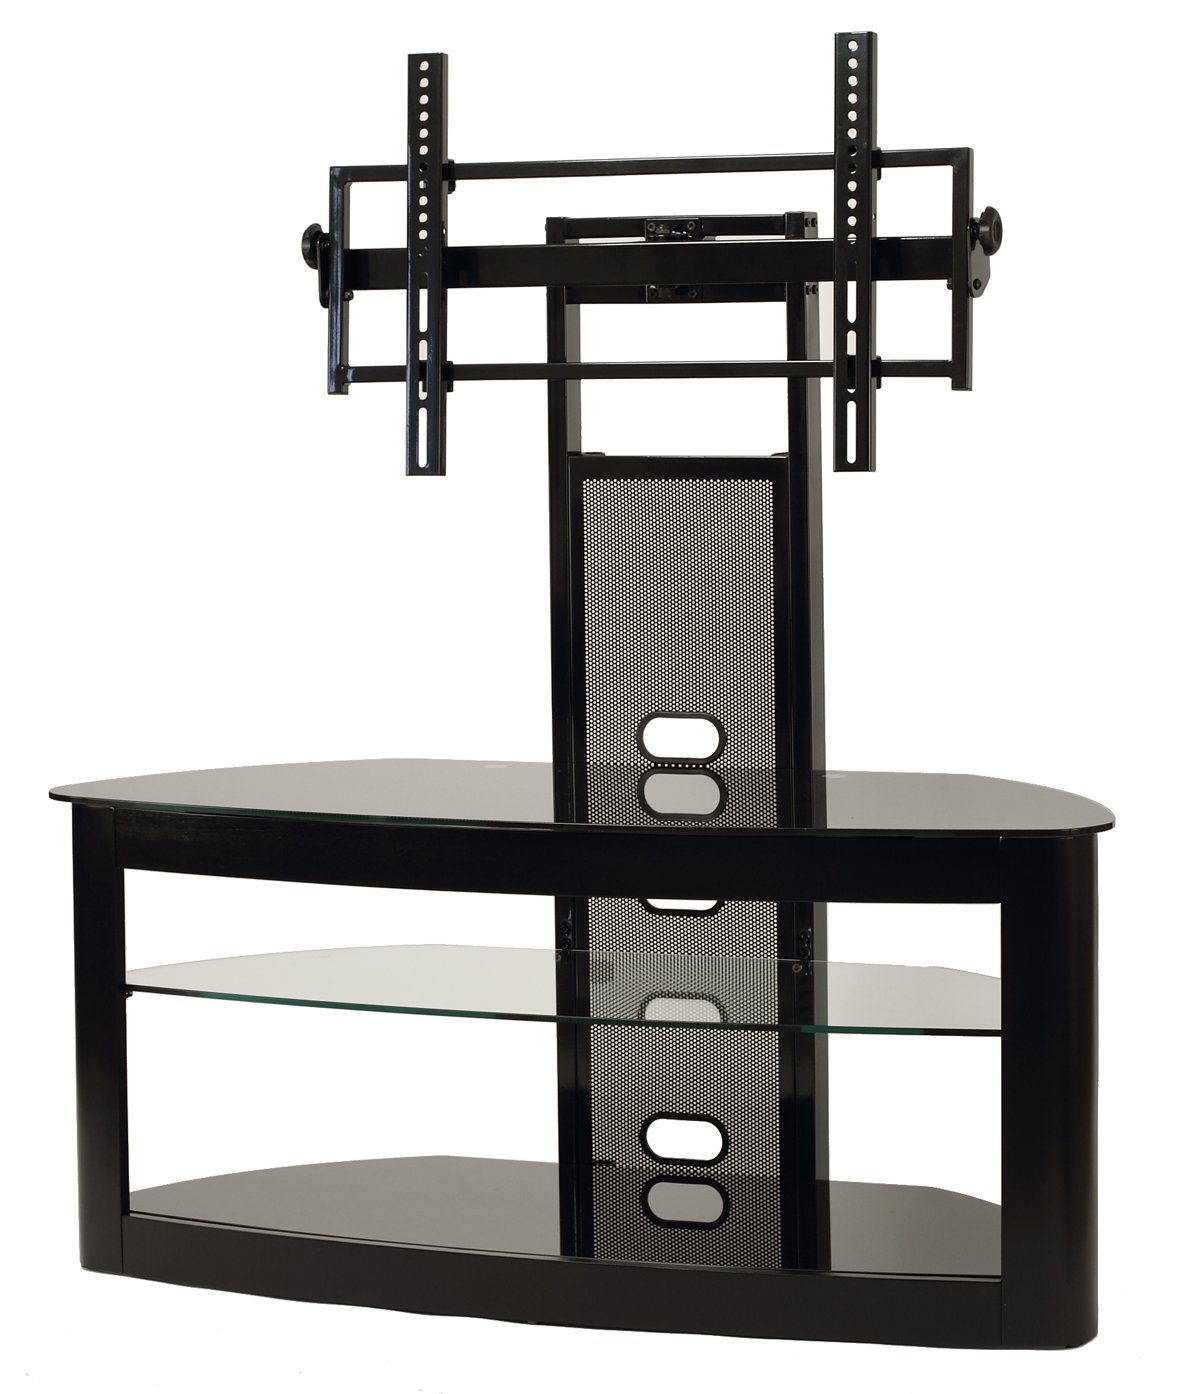 TransDeco LCD TV Stand with Universal Mounting System for 35 to 65-Inch Flat Panel TV by TransDeco (Image #4)